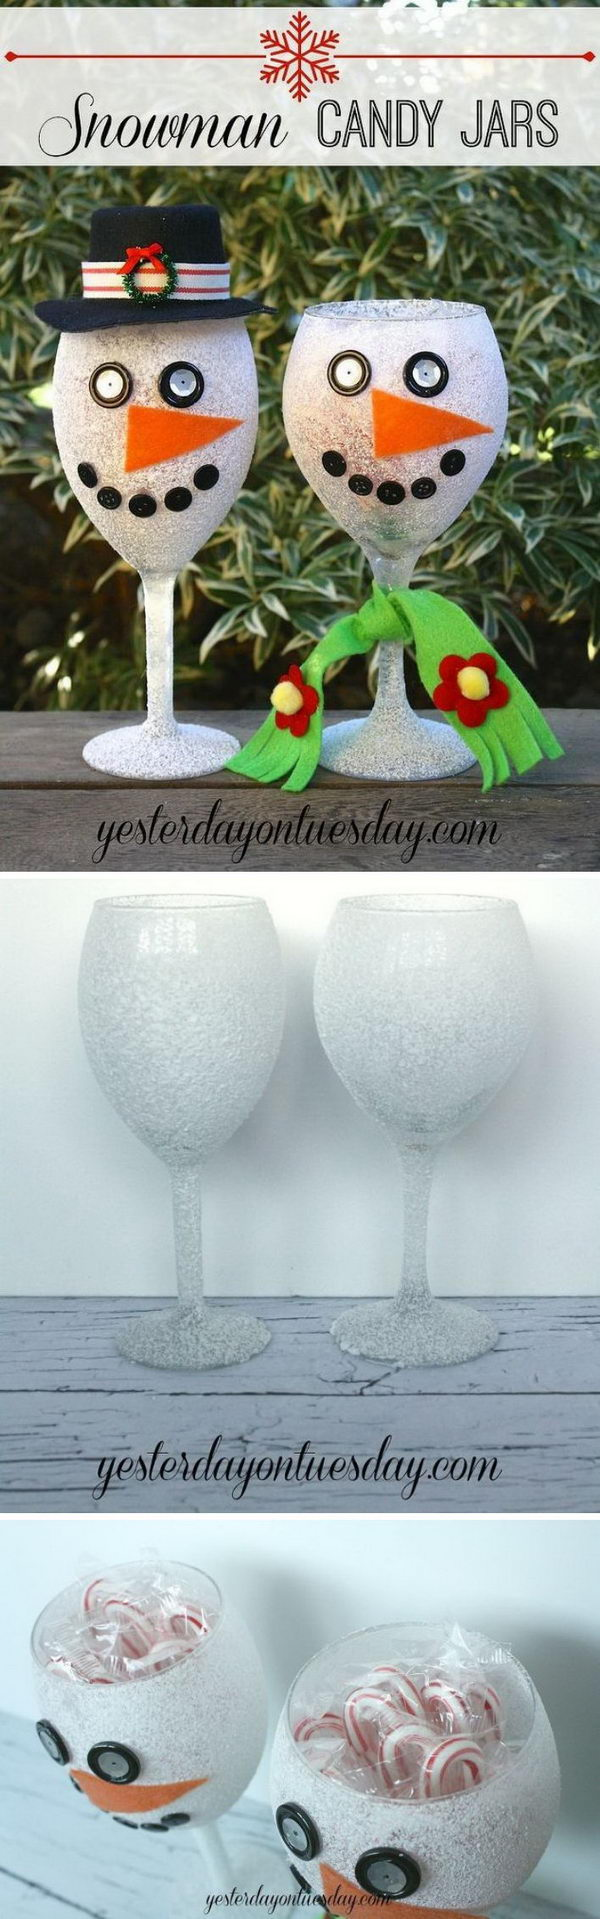 DIY Snowman Candy Jars Made With Wine Glasses.